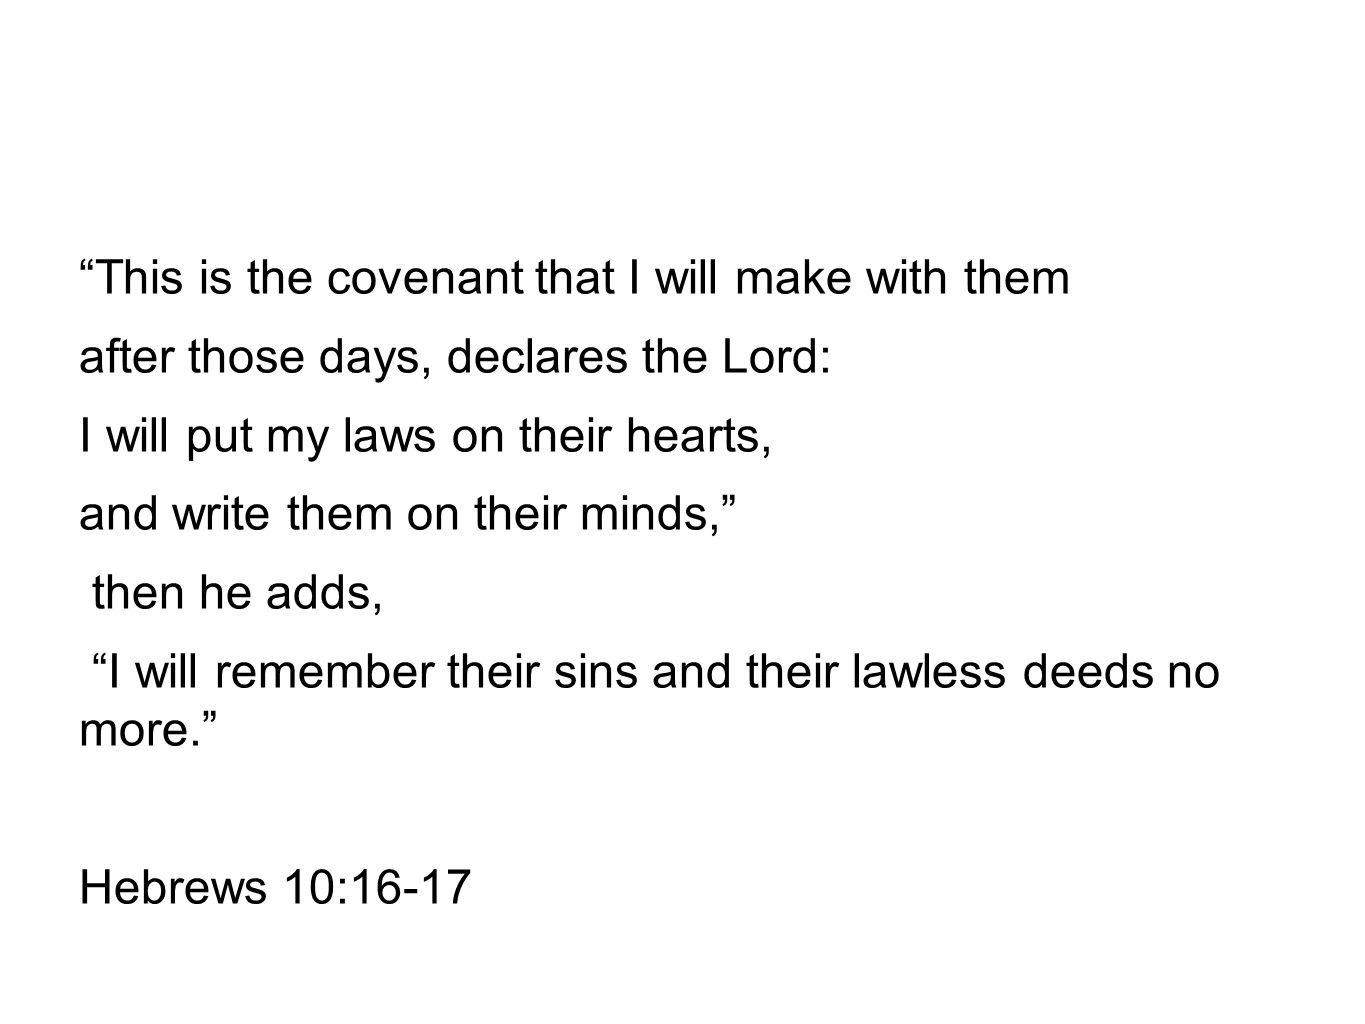 This is the covenant that I will make with them